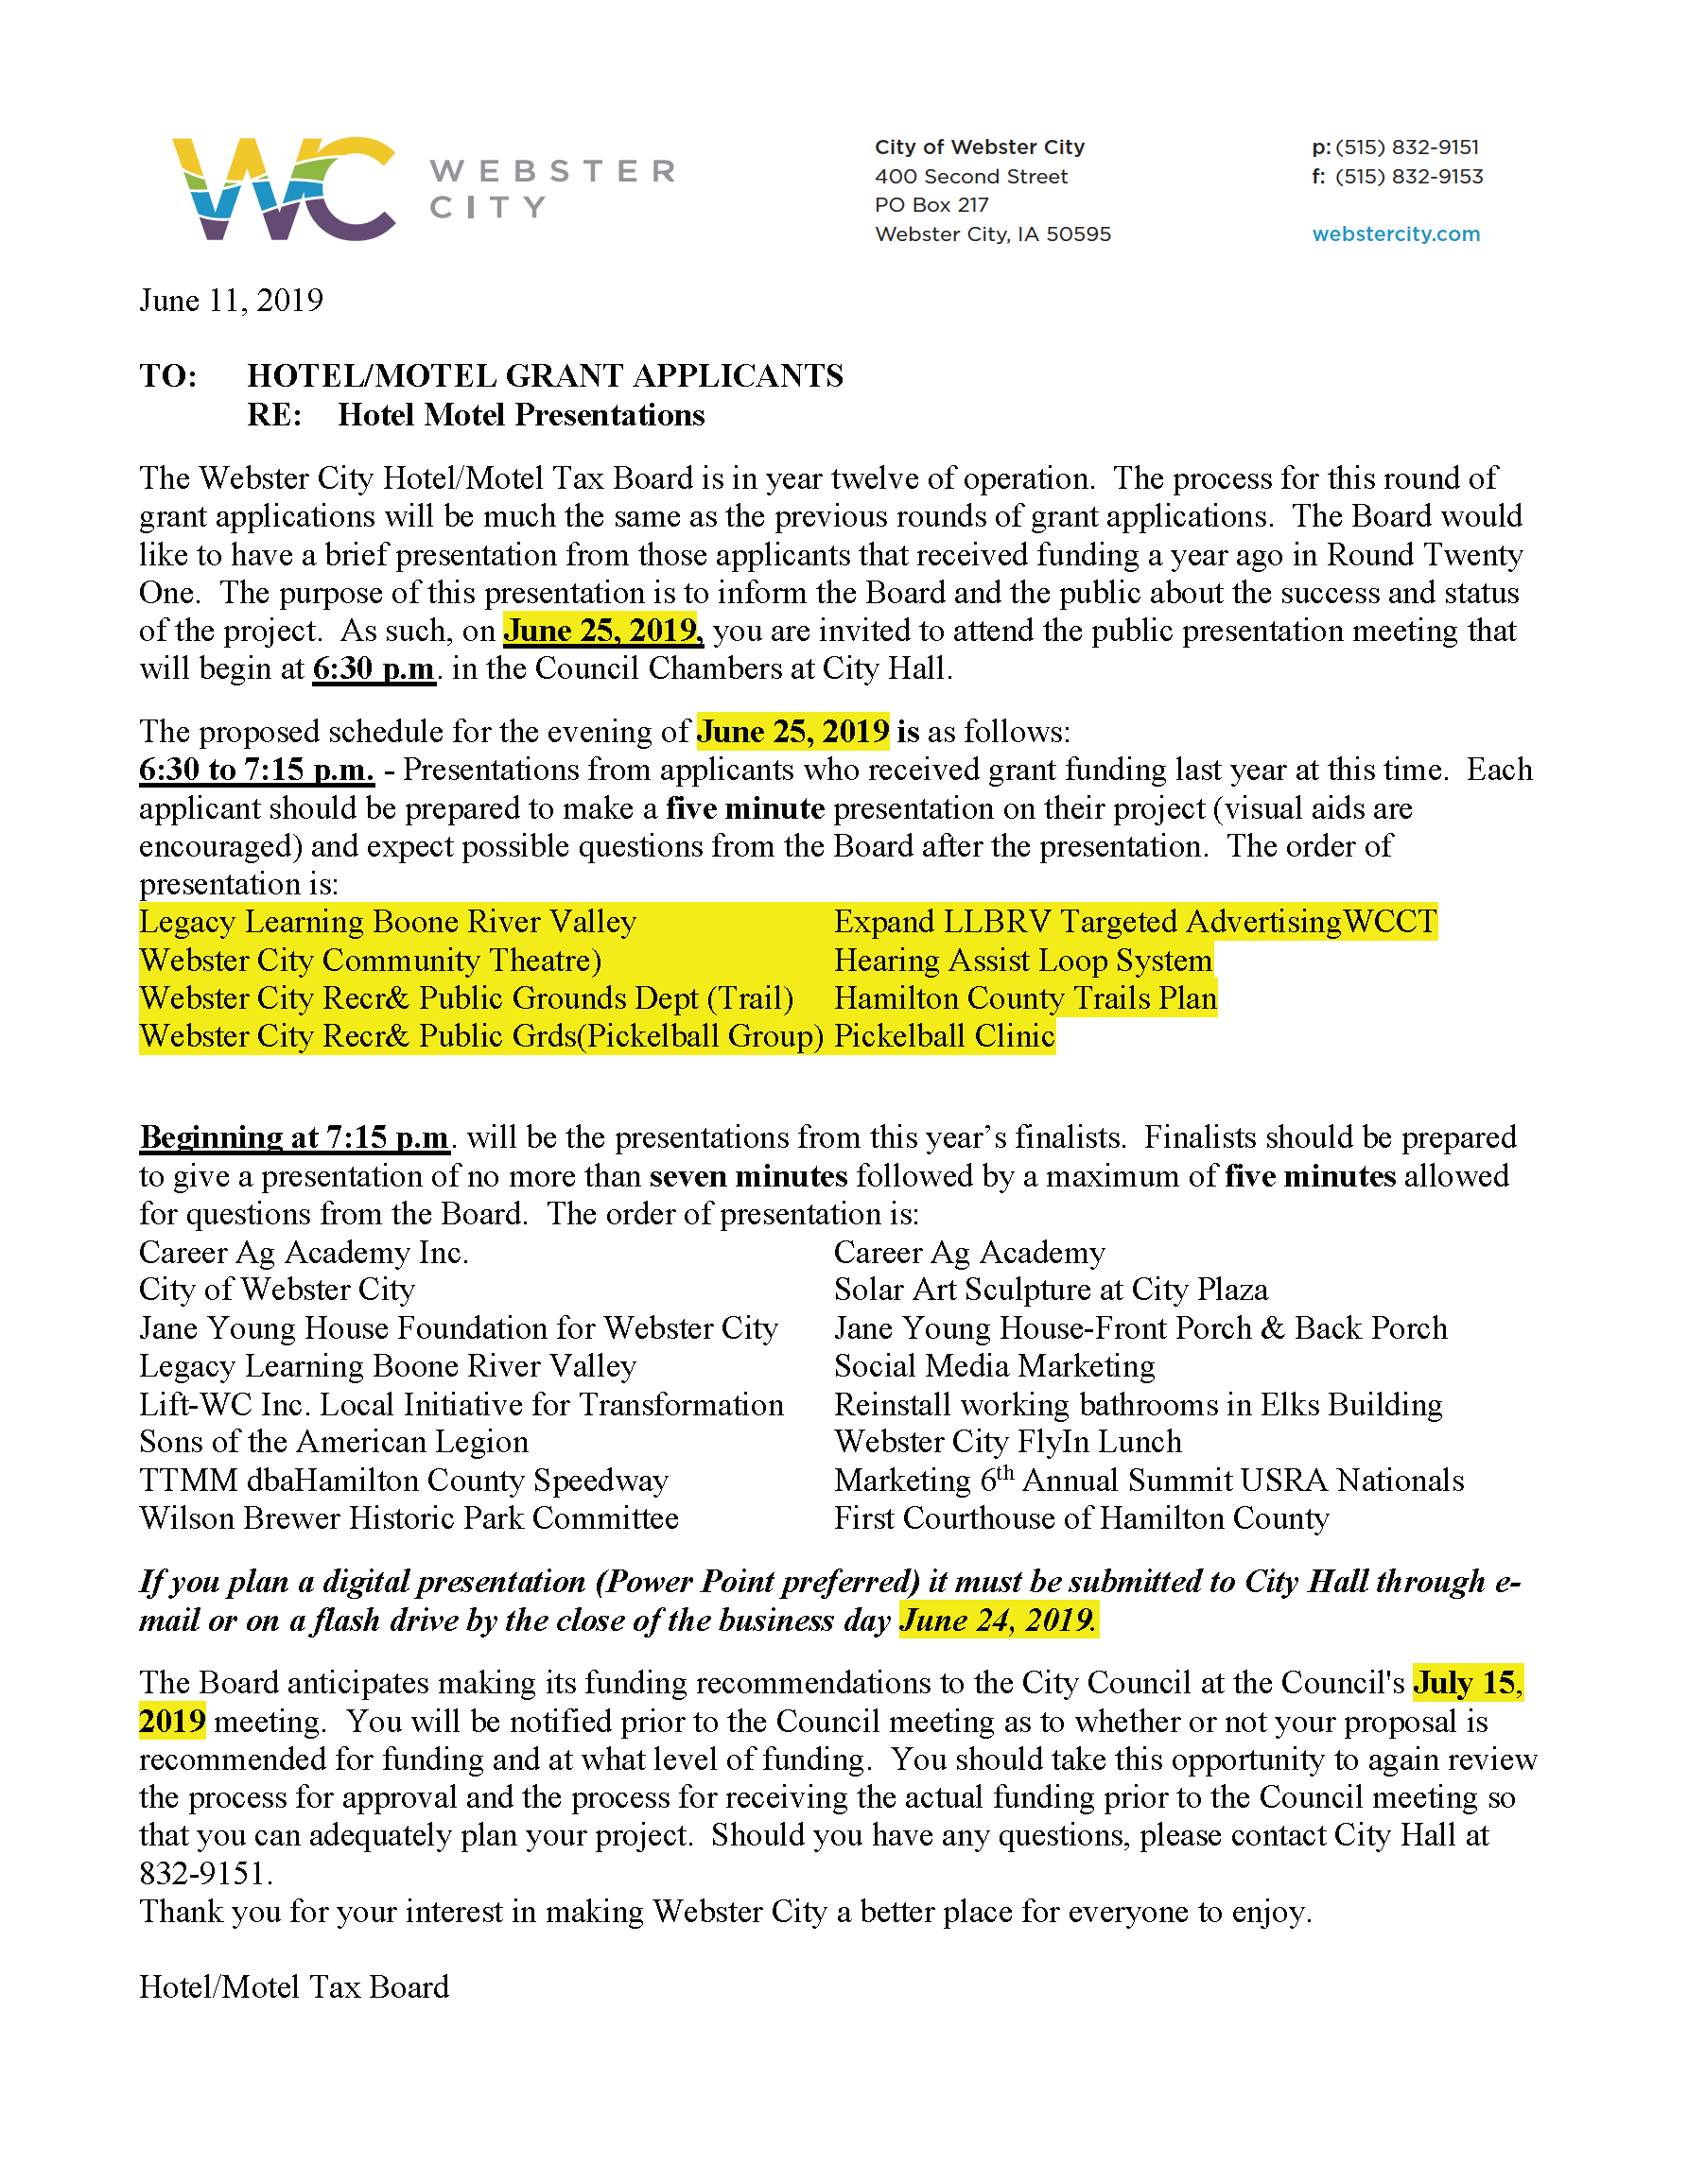 City Hotel/Motel Tax Board - presentations @ Webster City City Hall | Webster City | Iowa | United States